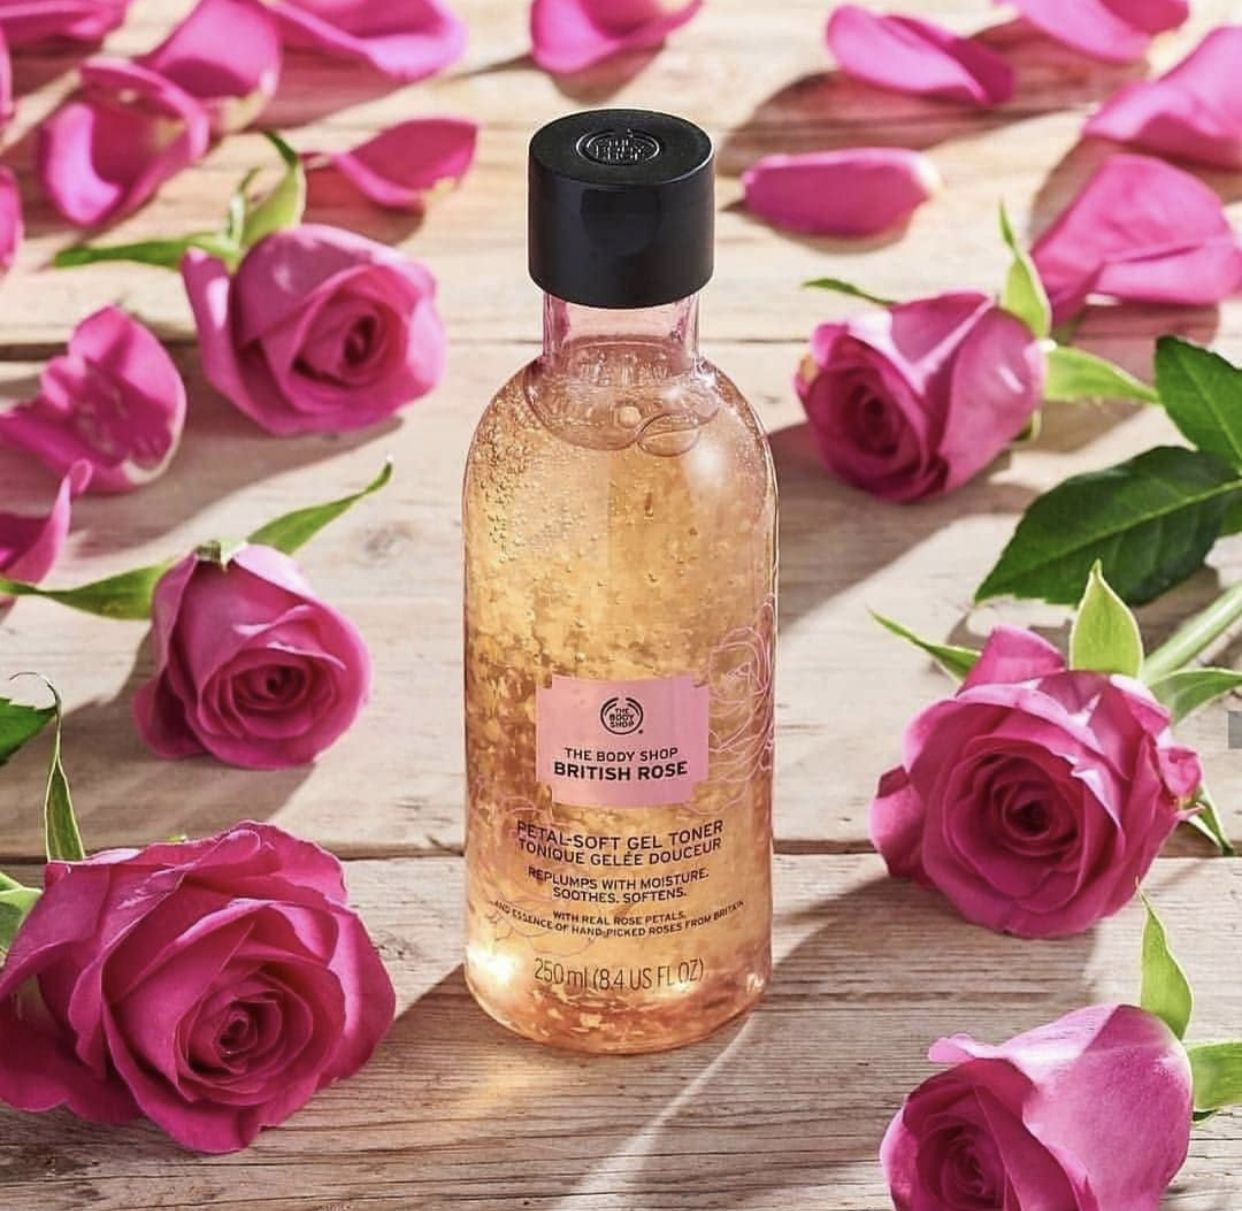 Introducing NEW Rose Hand Cream Handpicked Limited Edition   Facebook